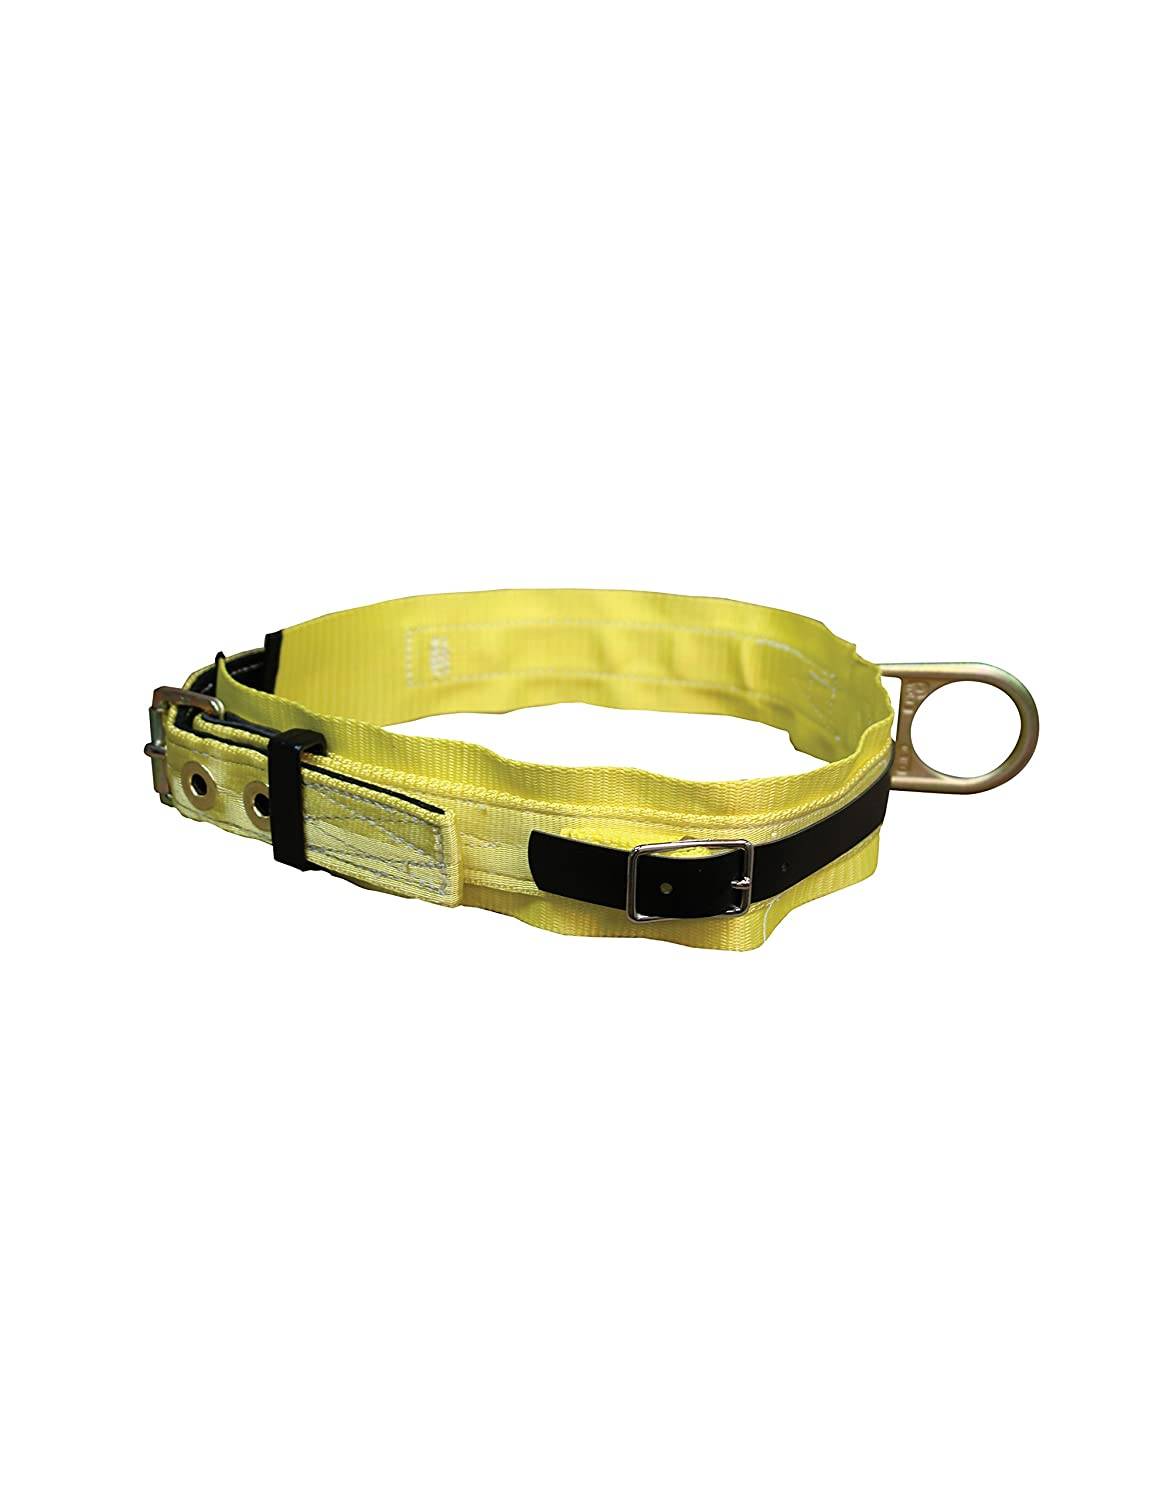 Elk River 03193 Nylon and Polyester Web Reinforced Miner's Body Work Belt with and 3